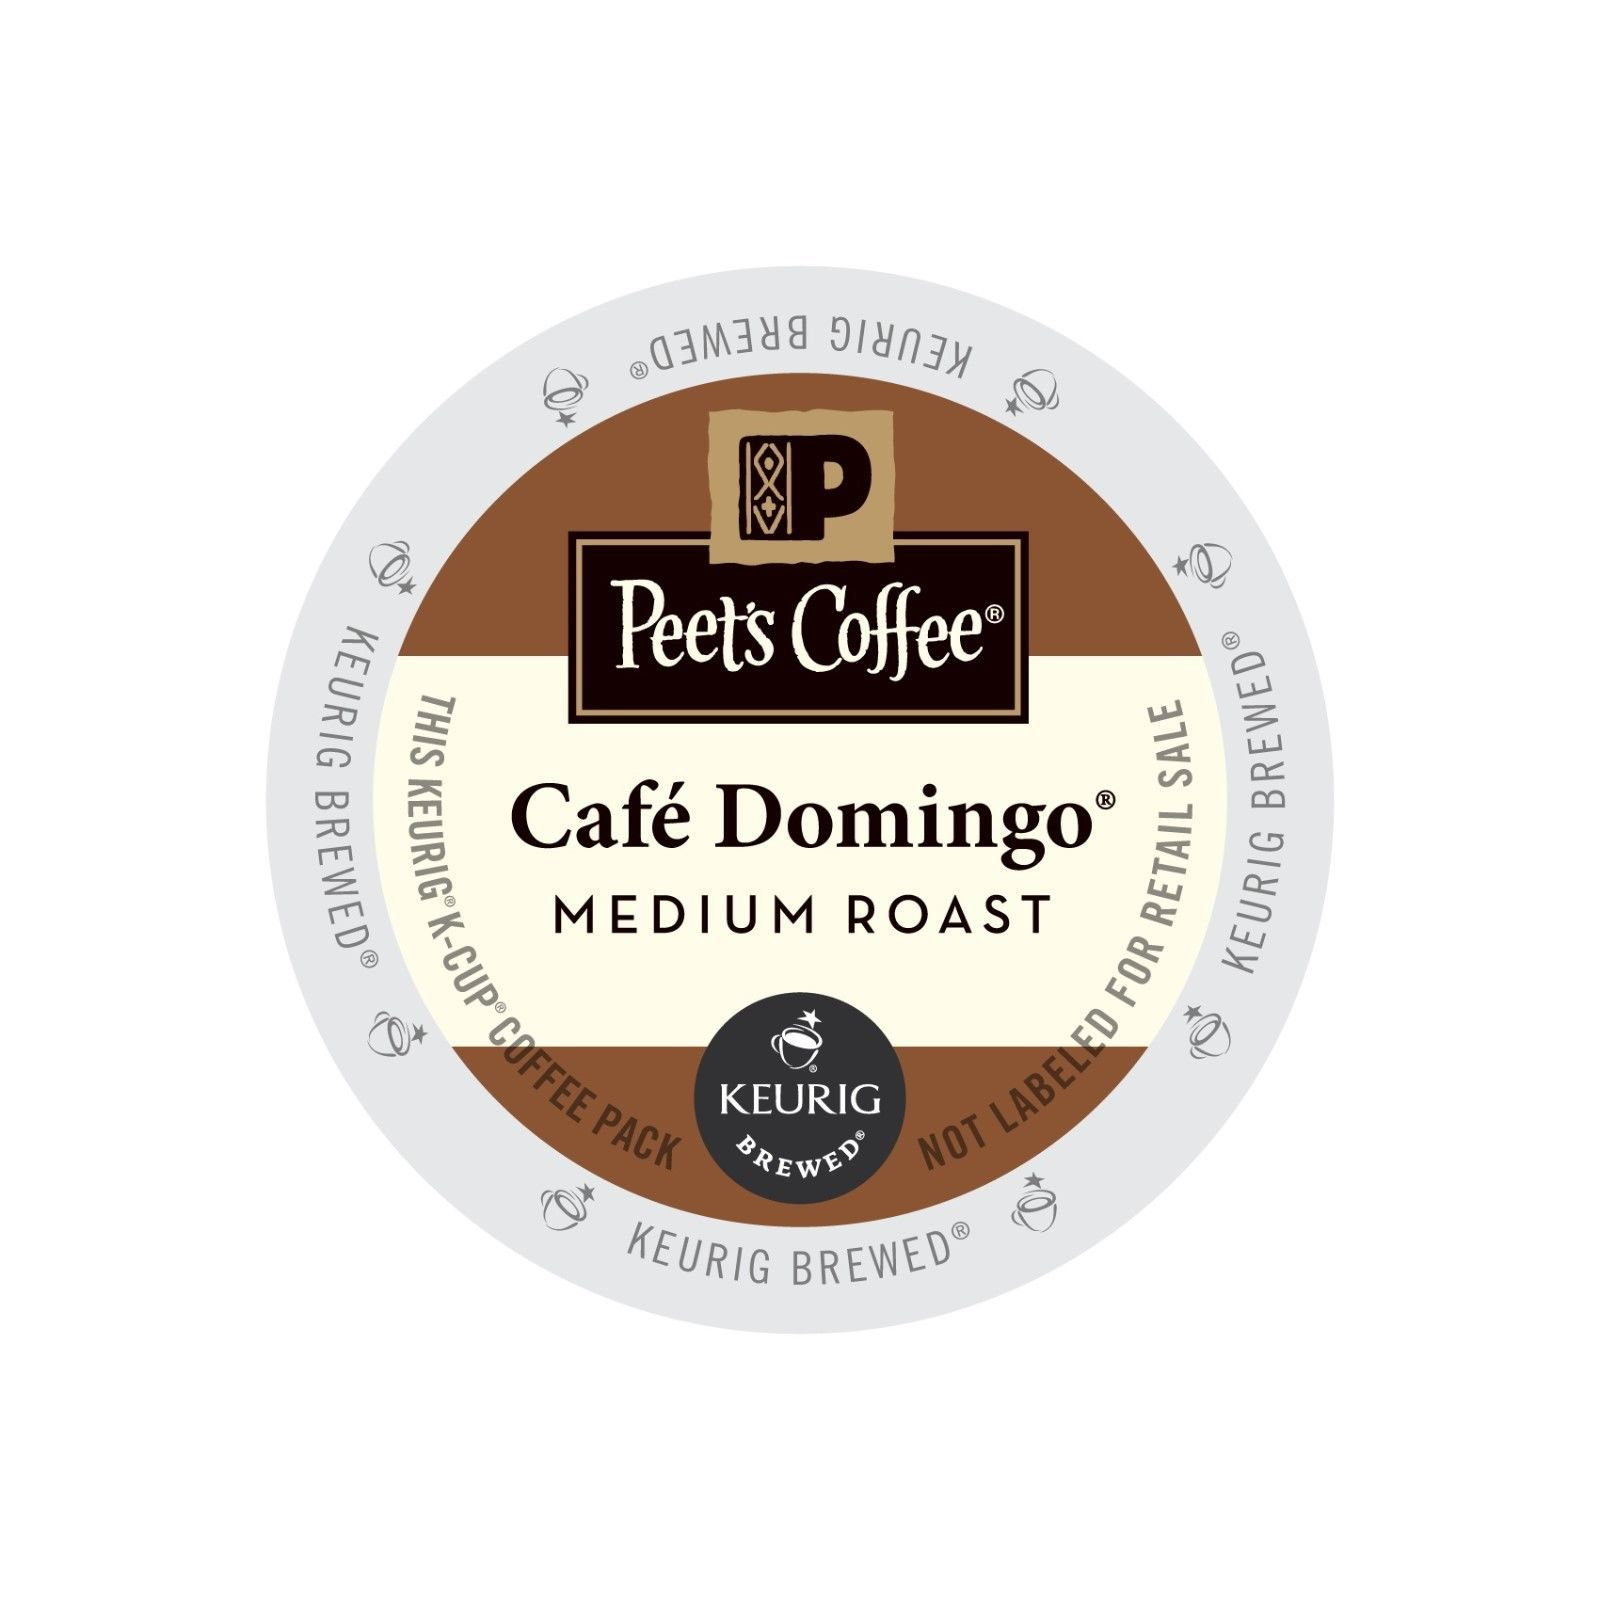 Peet's Coffee Cafe Domingo Coffee, 44 Kcups, FREE SHIPPING